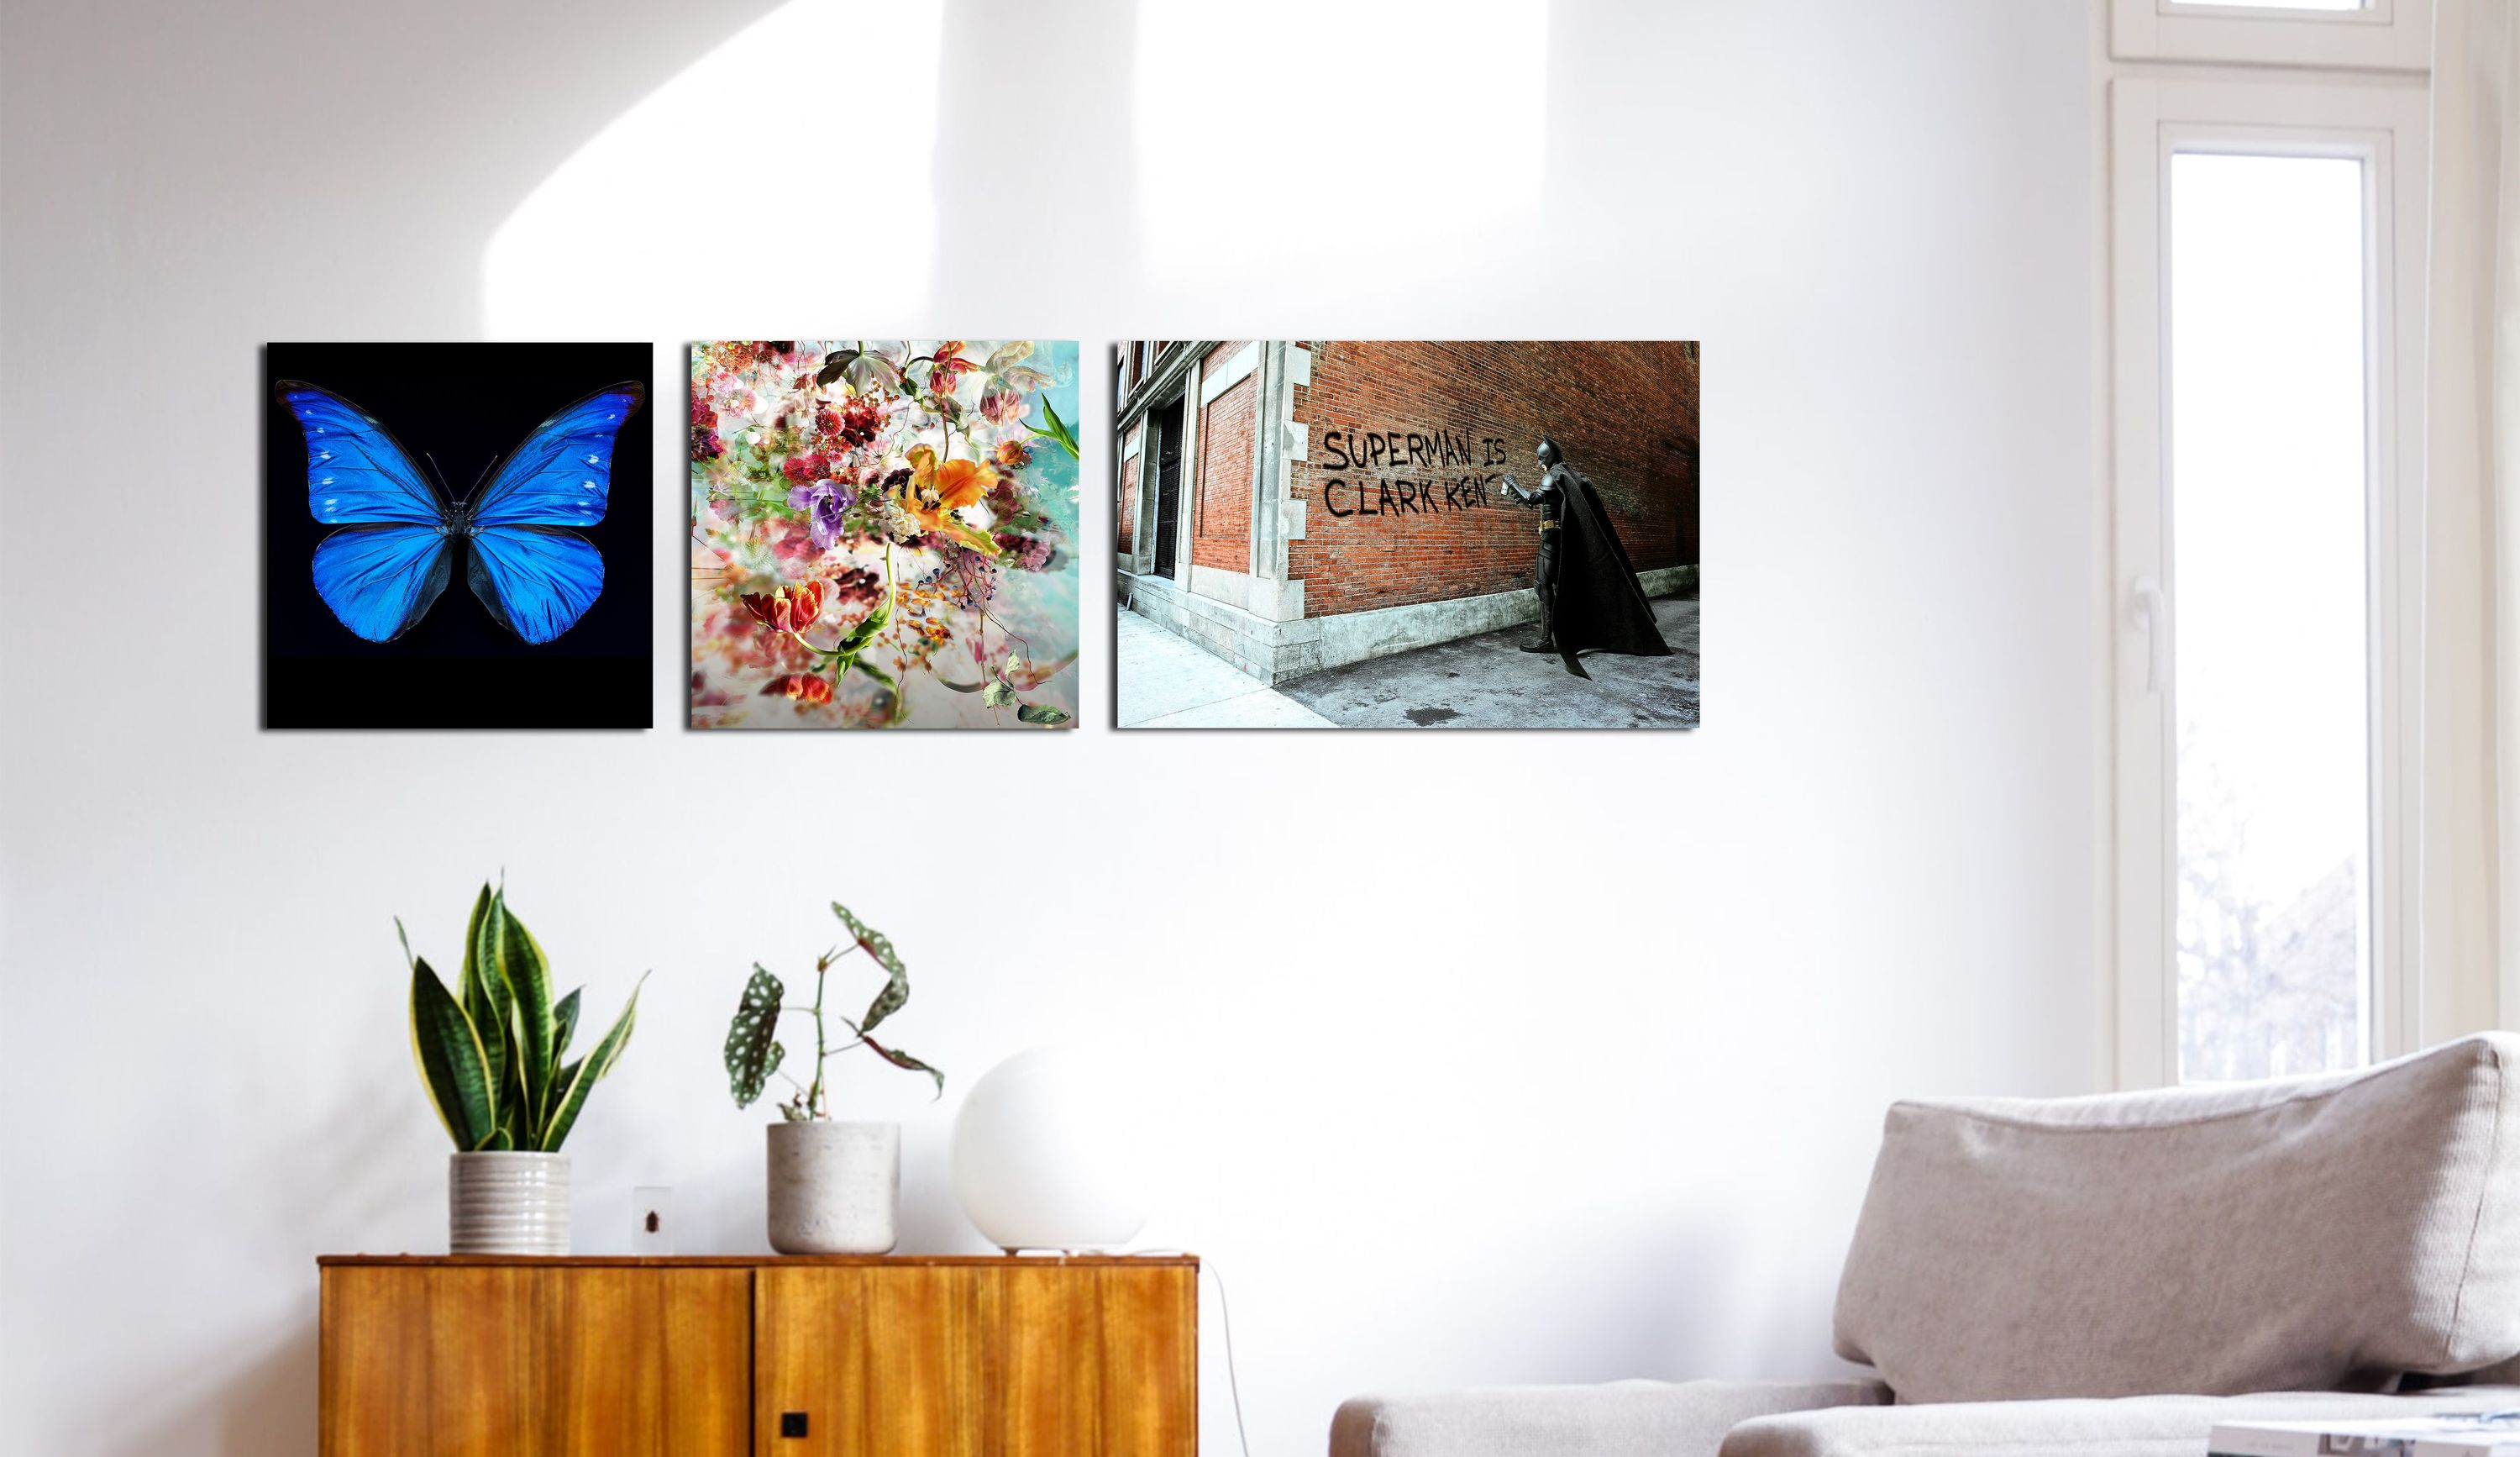 Three mini artworks on a wall from left to right; butterfly, floral tableau and a Banksy-style street art work